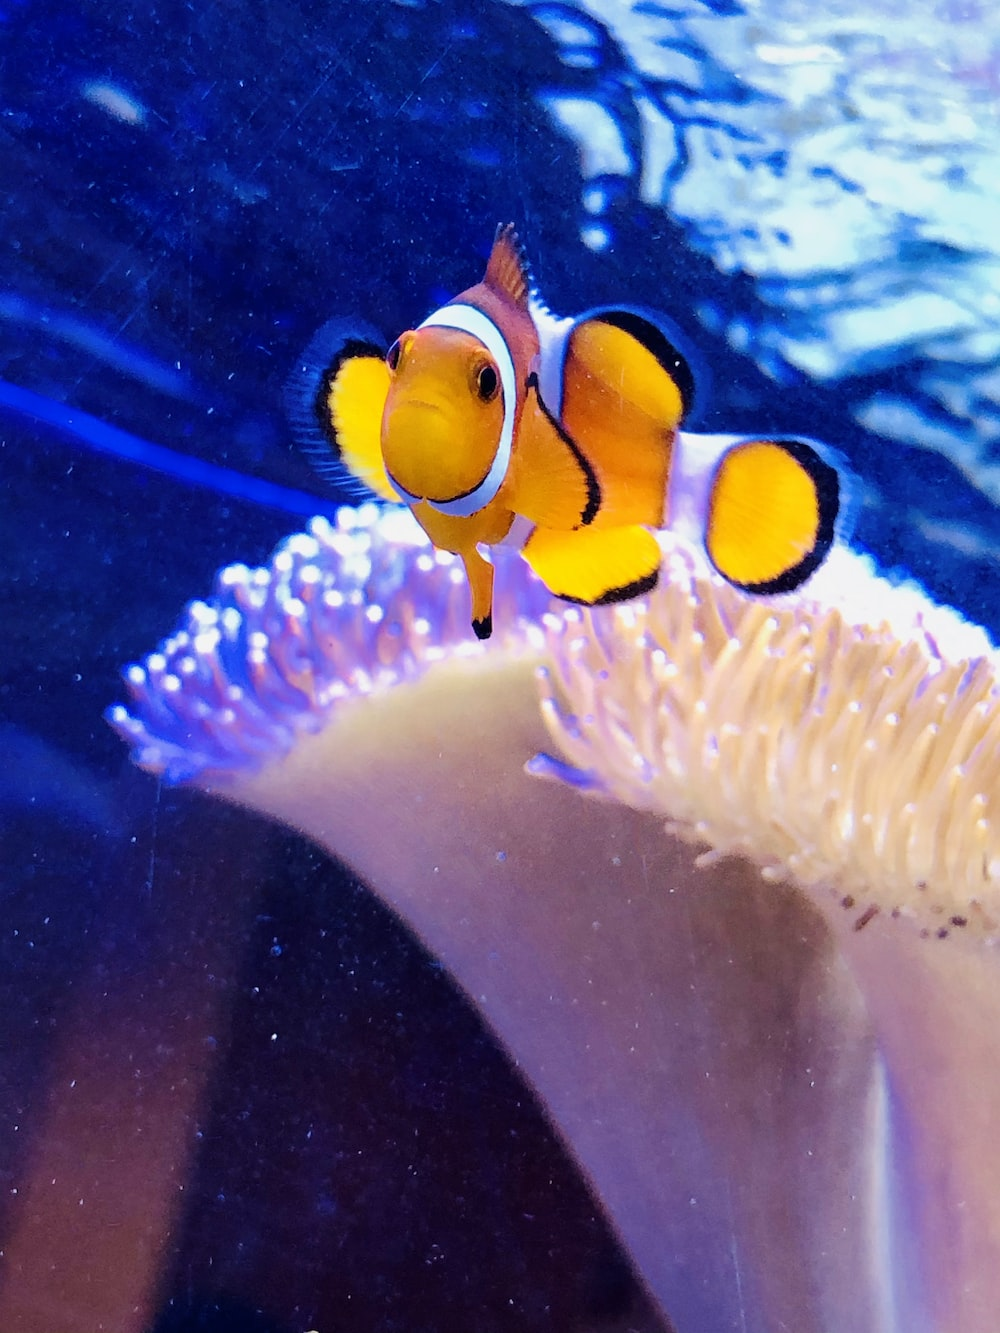 clown fish in water during daytime